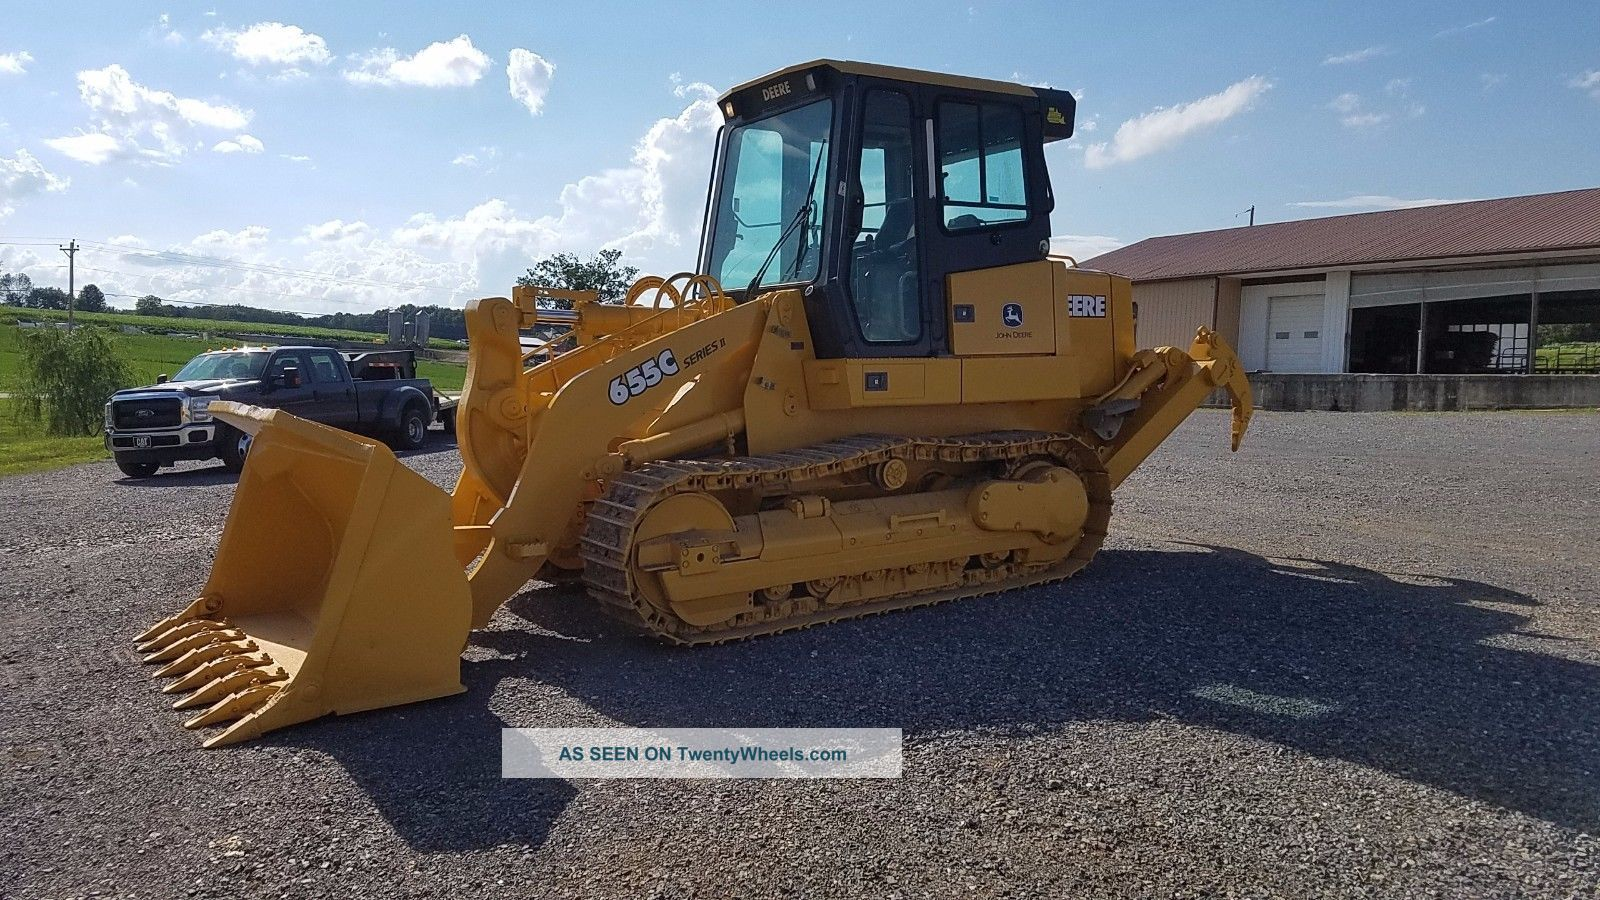 2003 John Deere 655c Series 2 Track Loader Diesel Engine Machine 3 Shank Ripper Crawler Dozers & Loaders photo